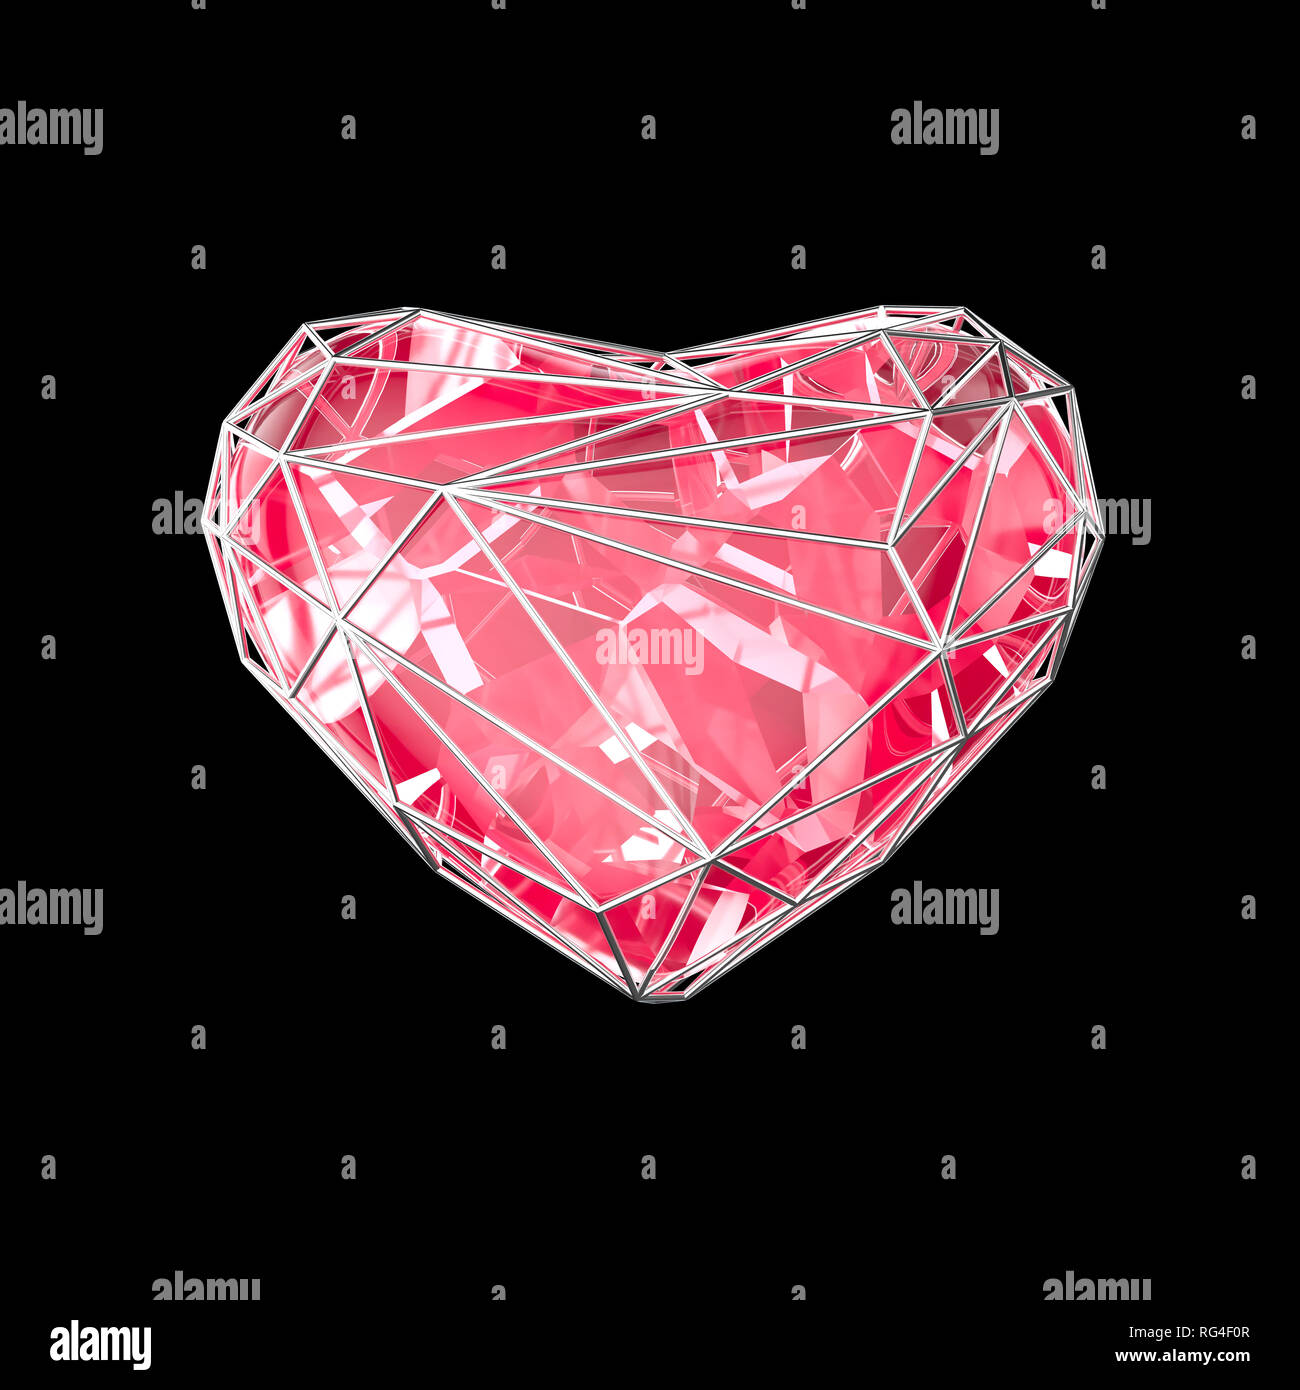 Crystal pink heart in silver setting on black background - Stock Image